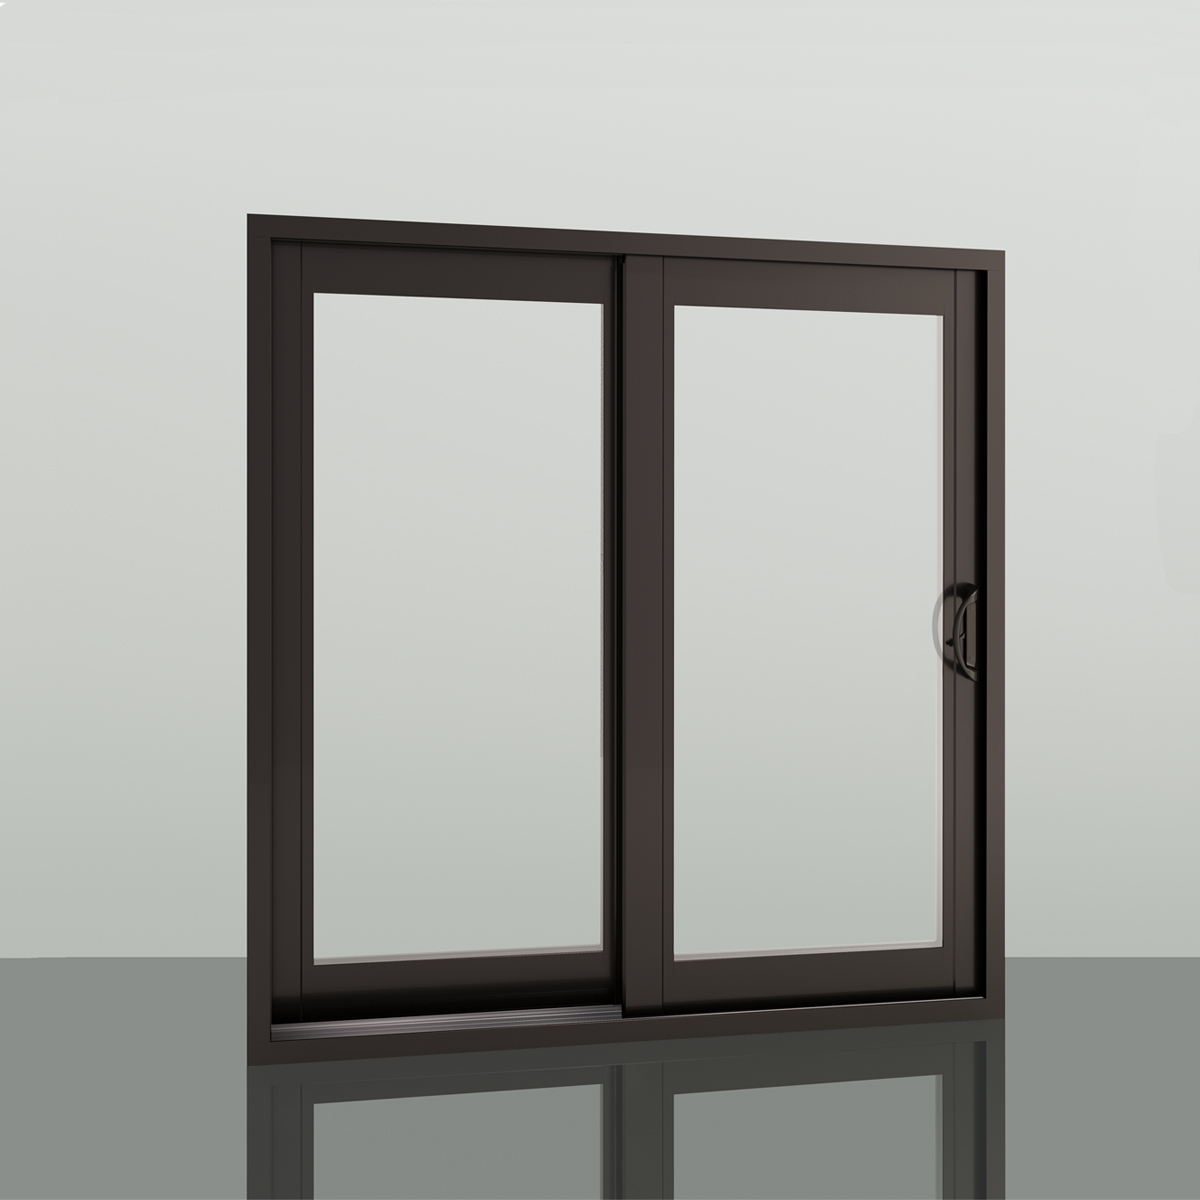 100 Series Sliding Glass Door